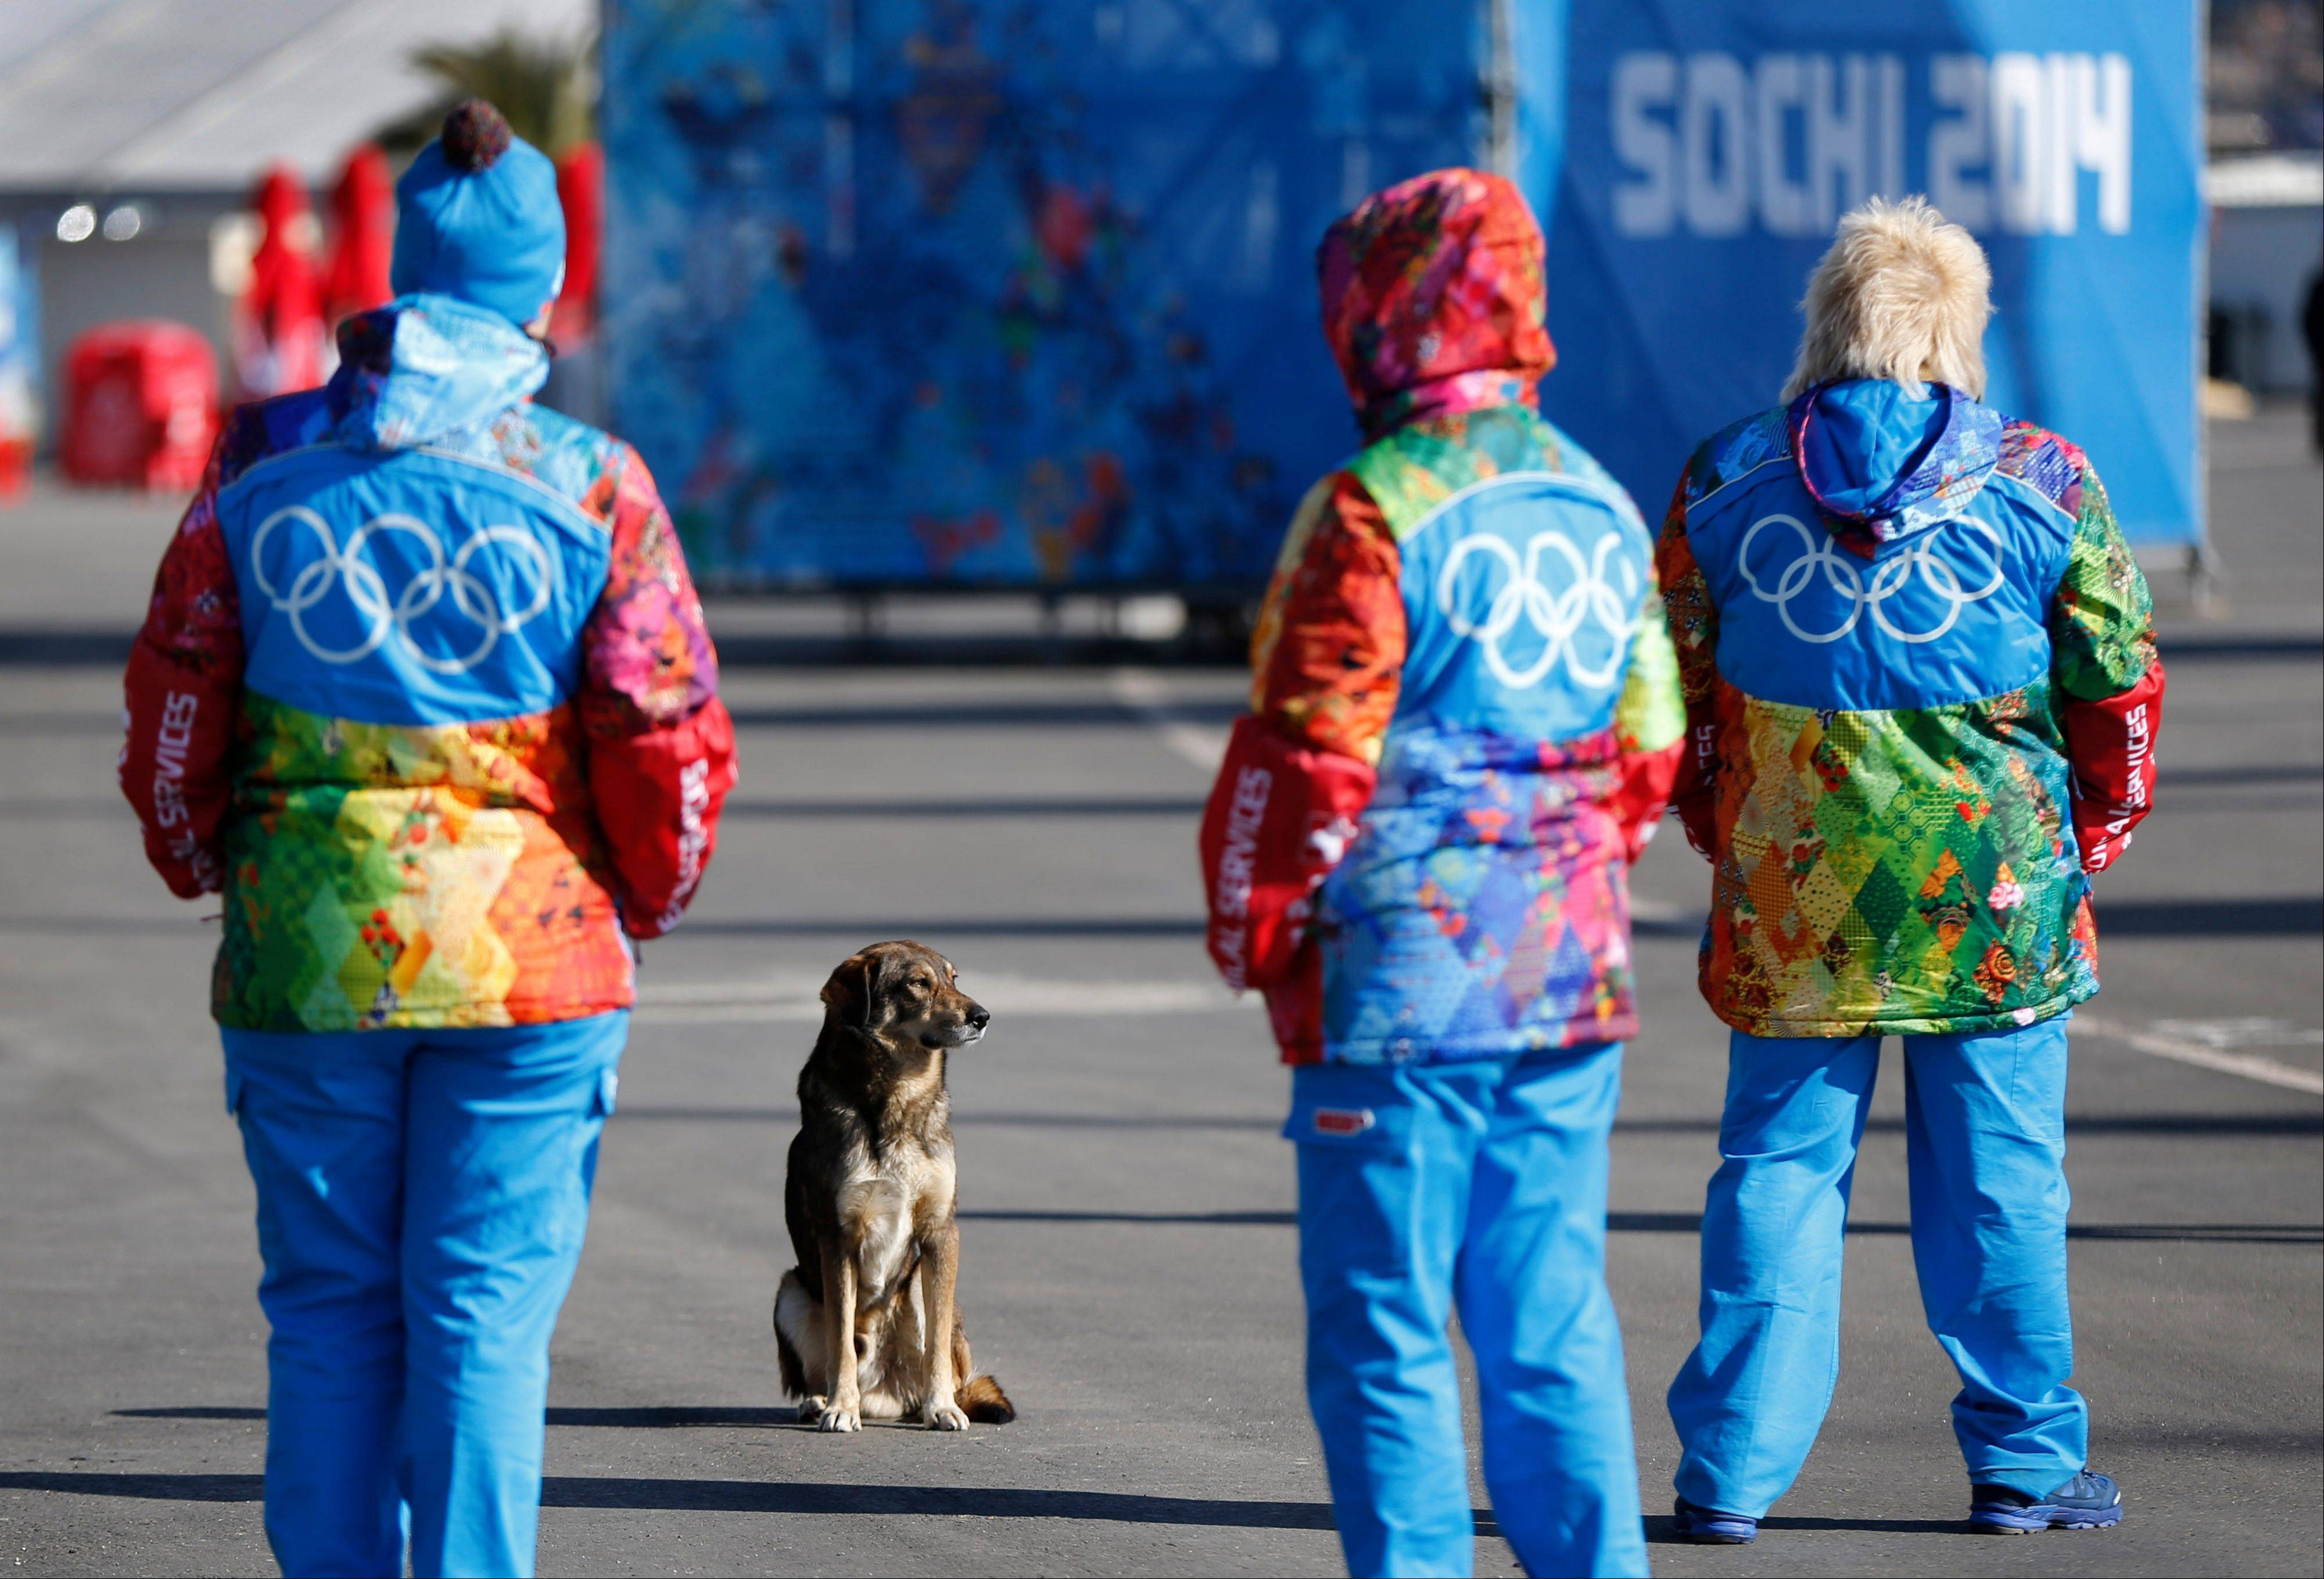 A stray dog sits near Olympic volunteers in Olympic Park ahead of the 2014 Winter Olympics, Thursday, Feb. 6, 2014, in Sochi, Russia.